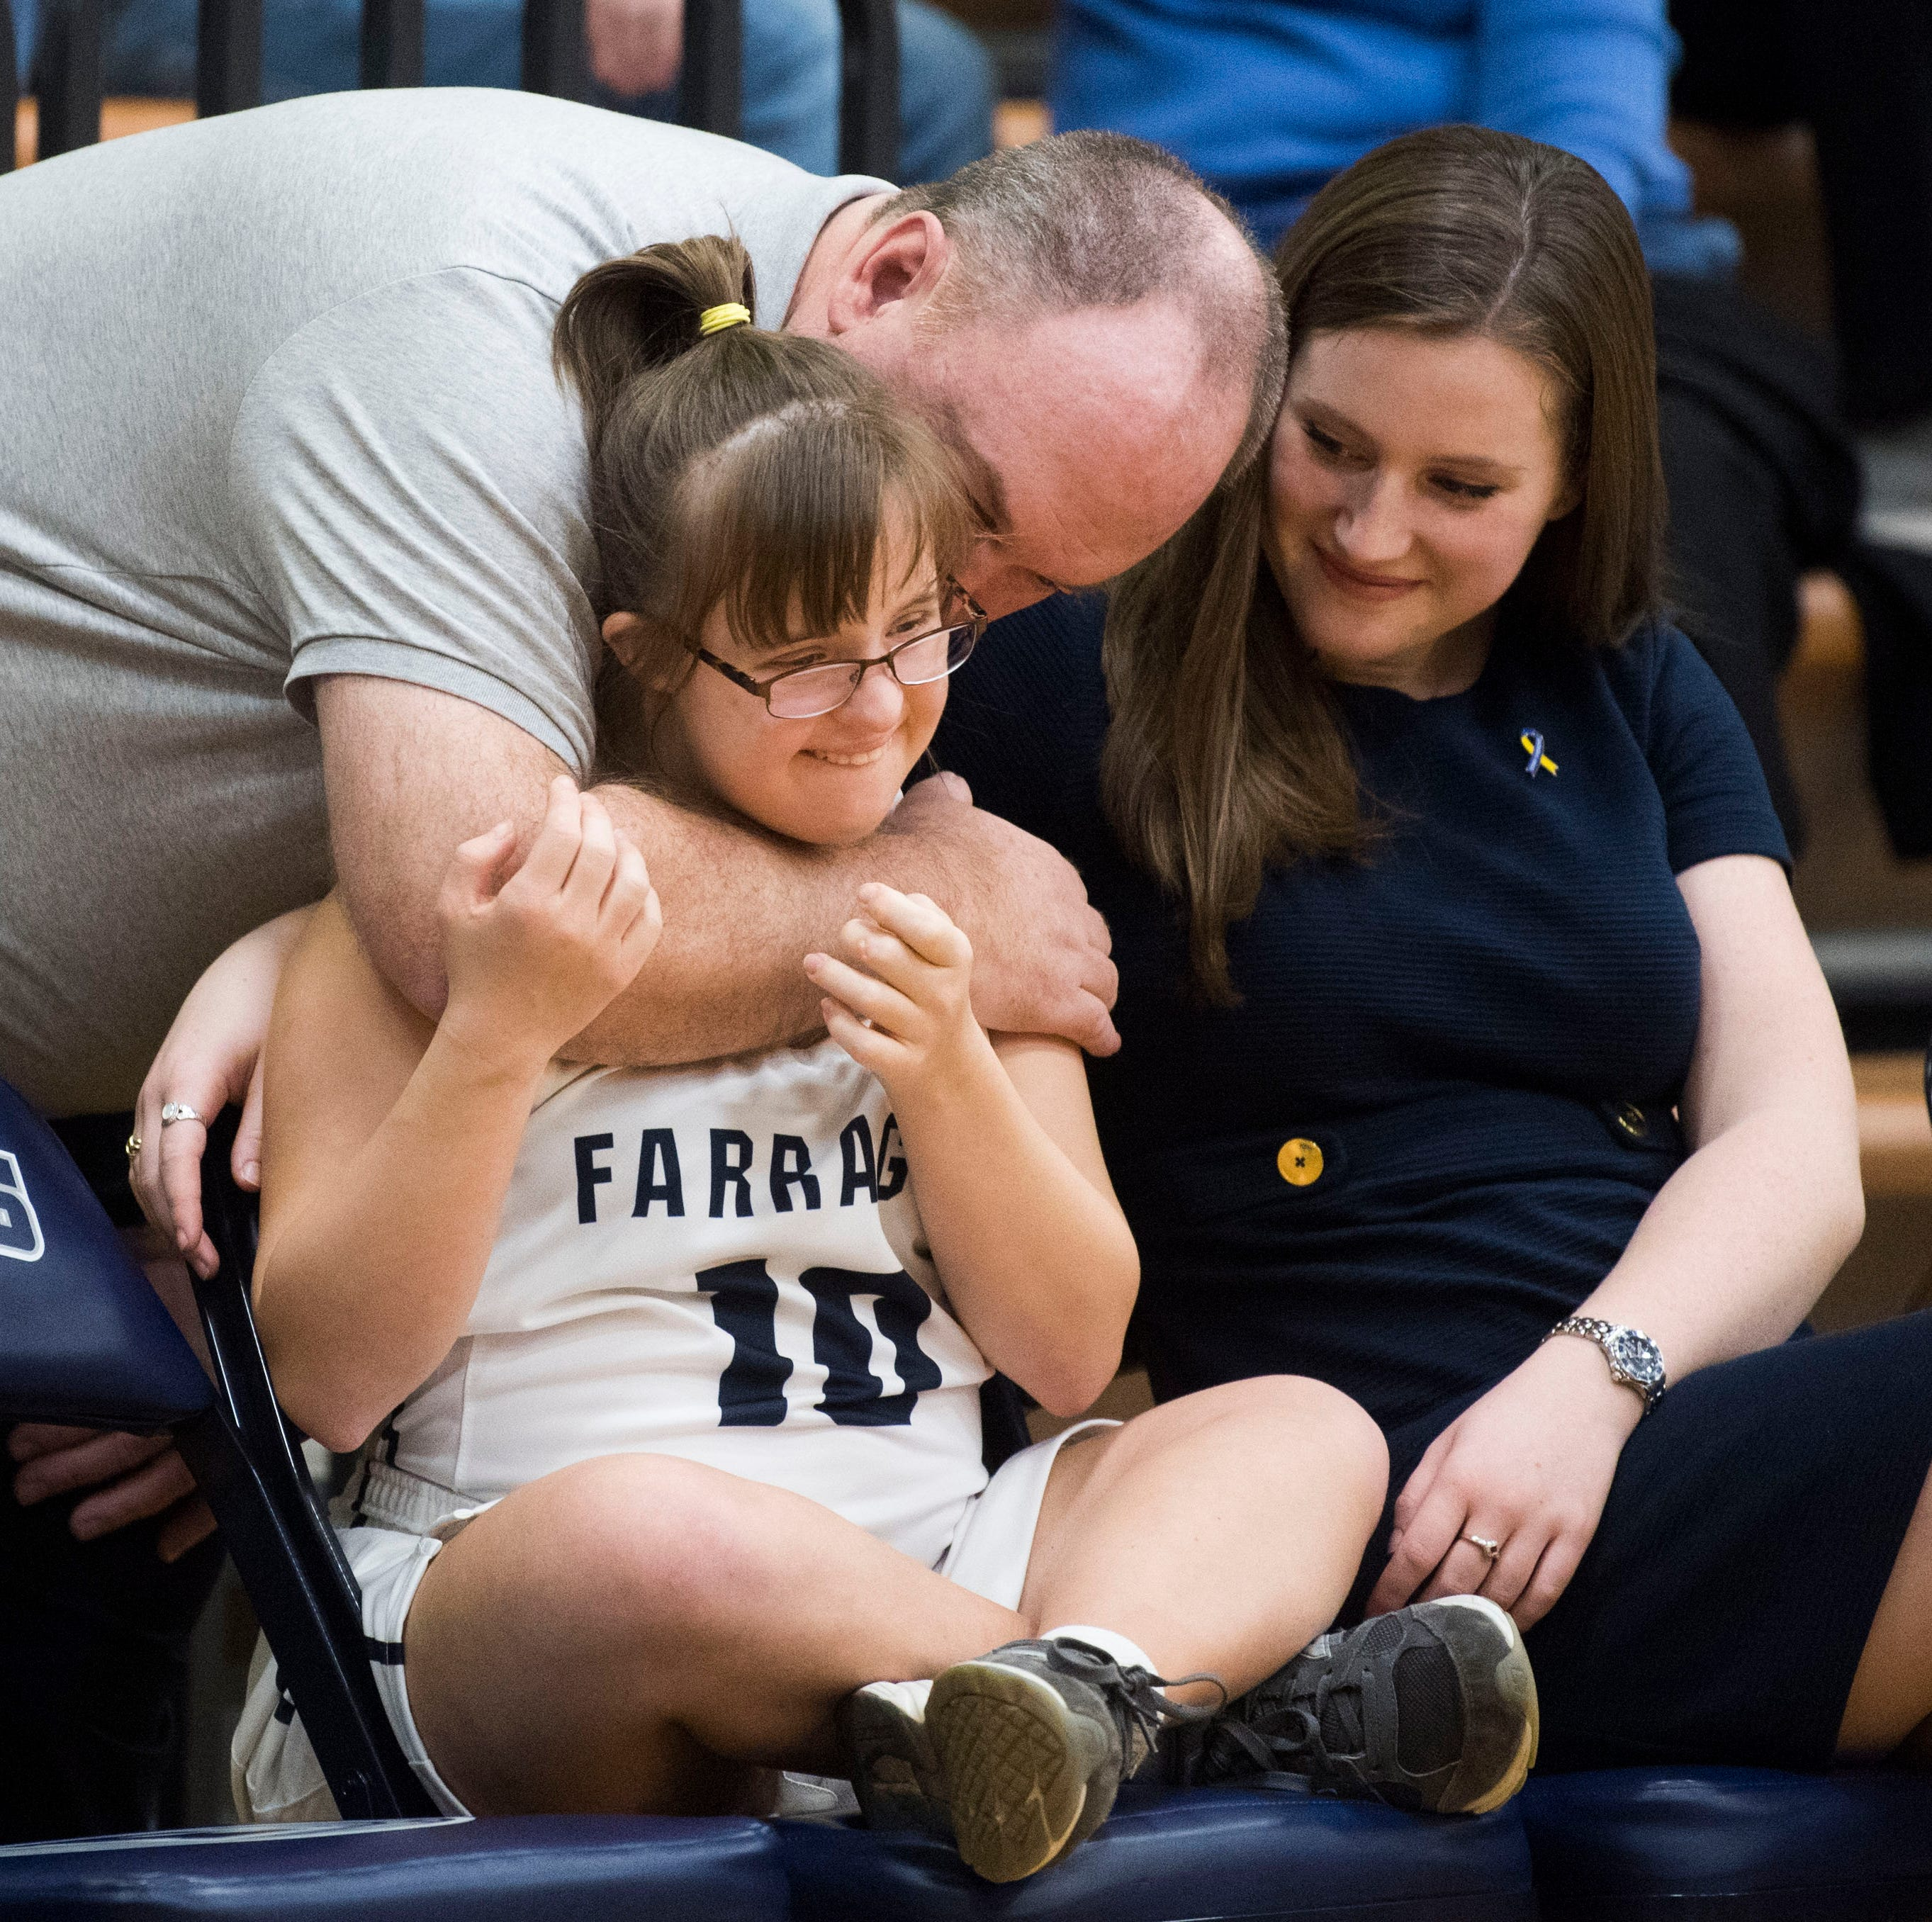 Farragut girls basketball player with Down syndrome 'always that source of encouragement'